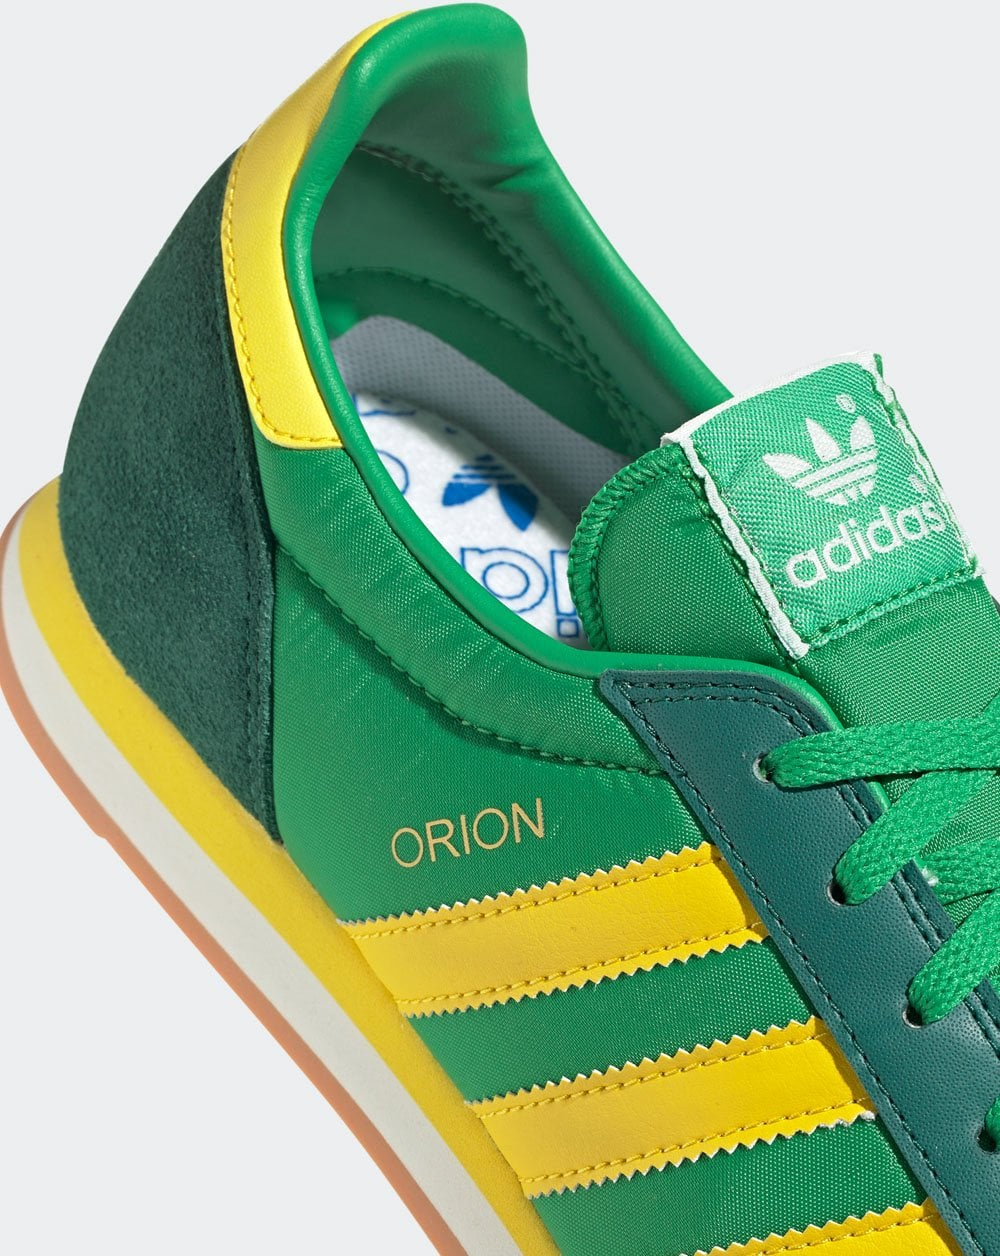 Adidas Orion Trainers Vivid Green/Yellow